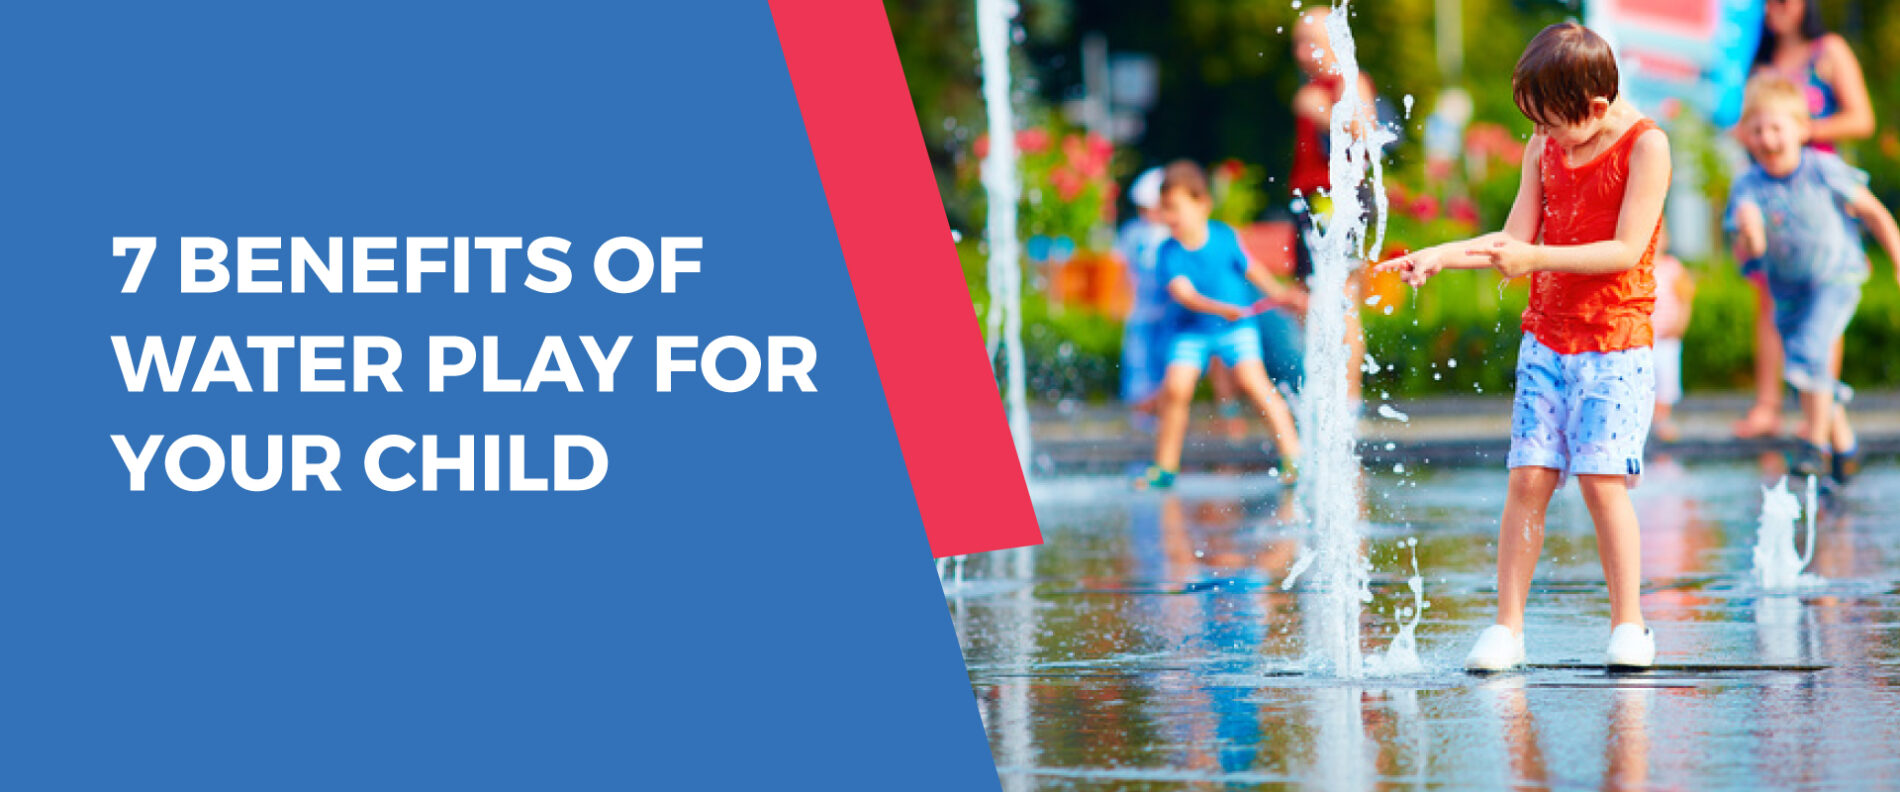 7 Benefits of Water Play For Your Child